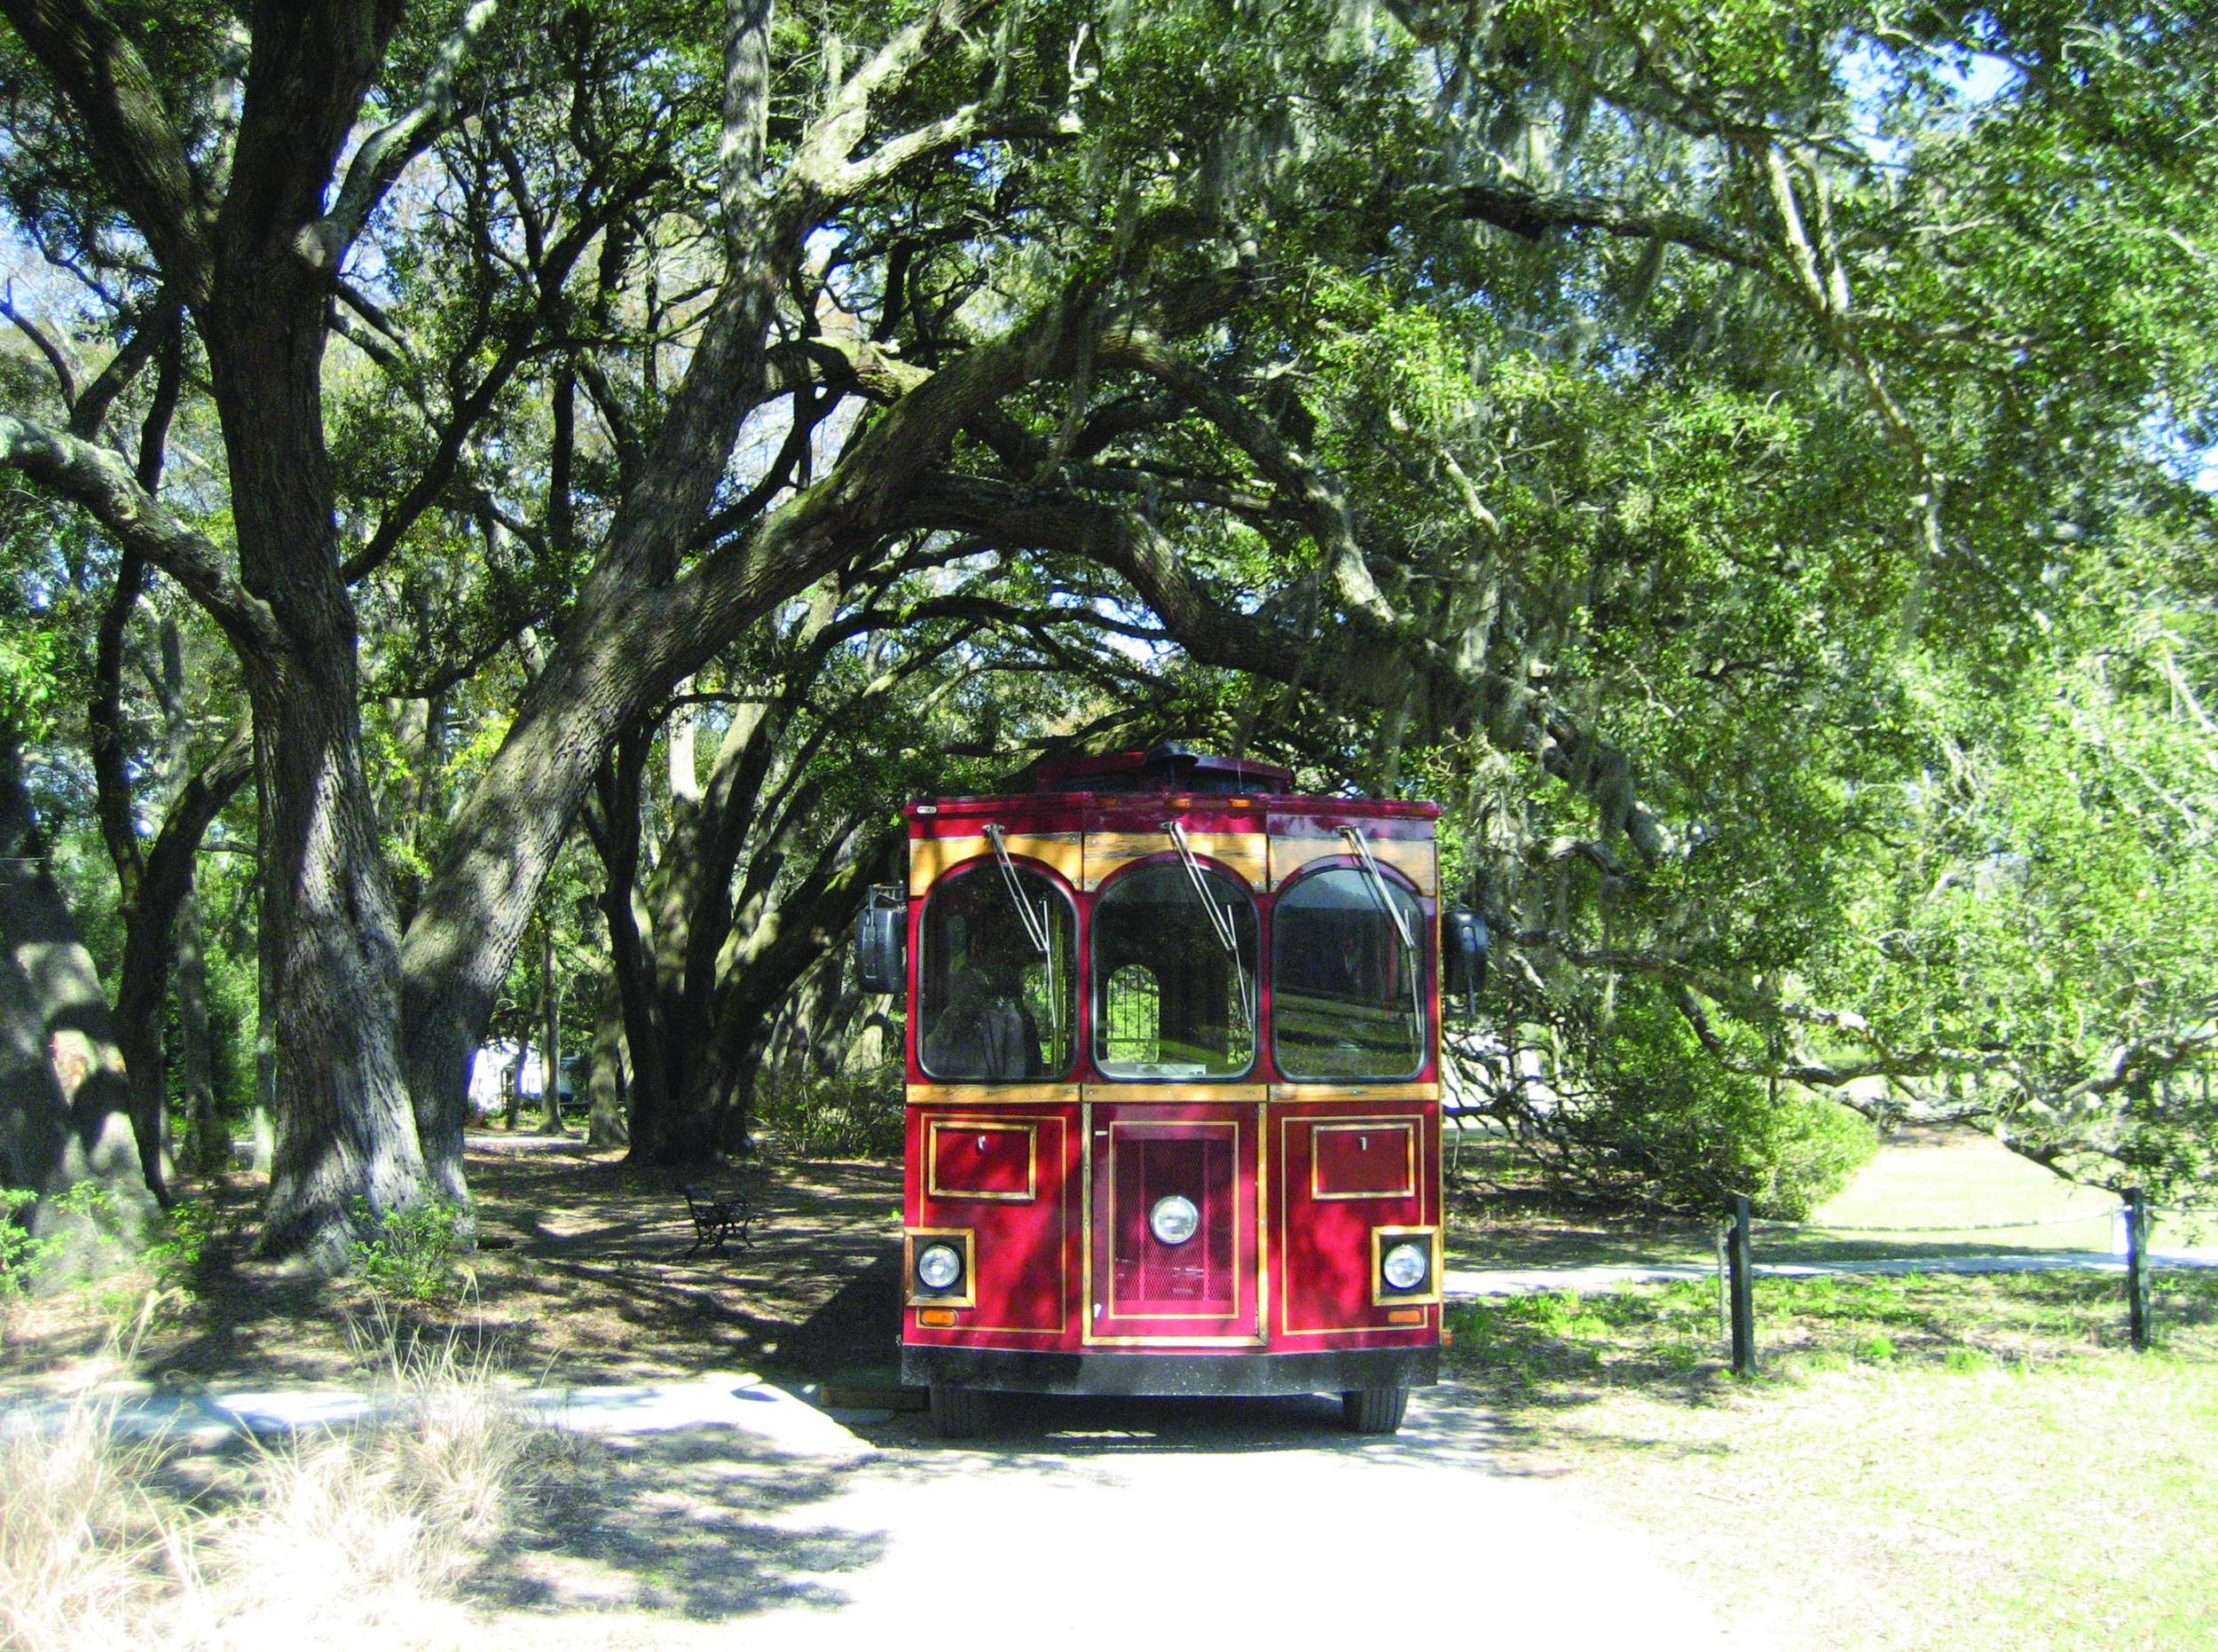 A trolley parked under the oak trees